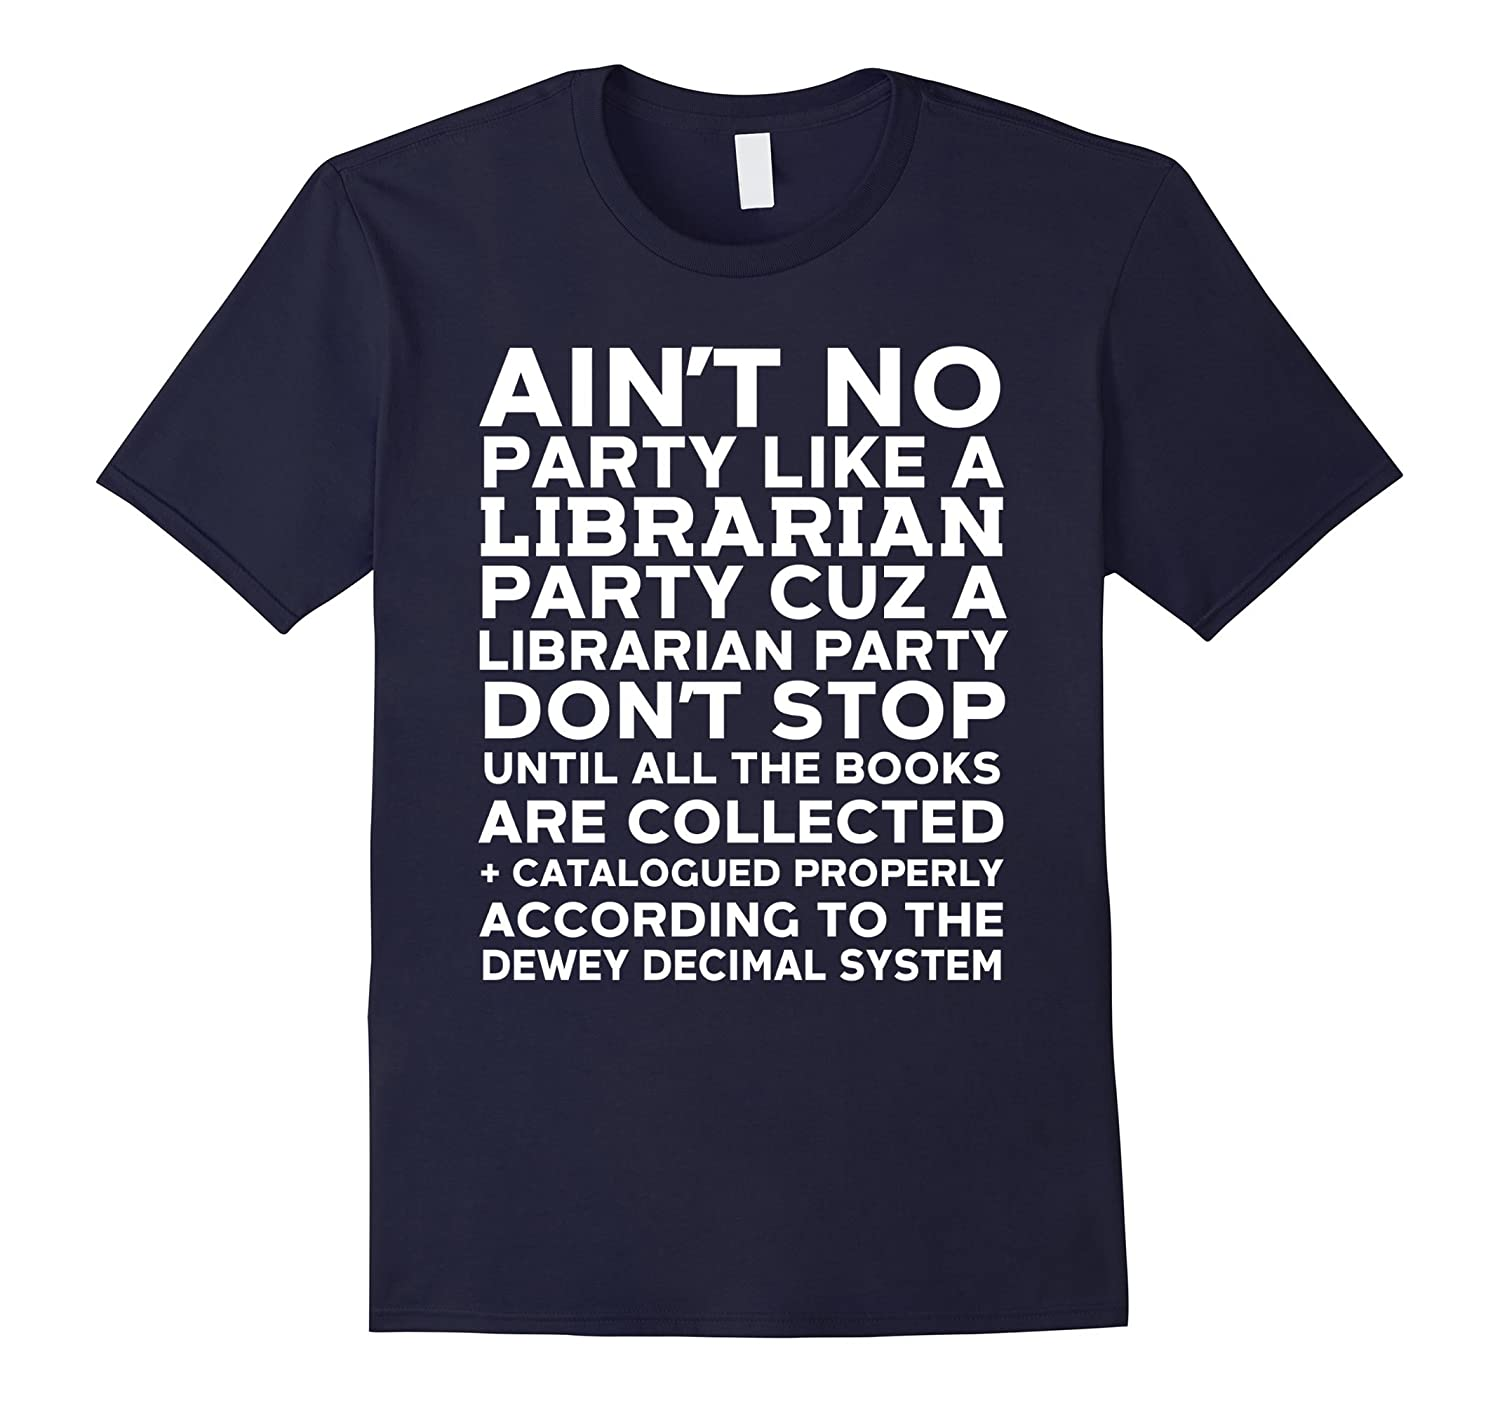 Aint No Party Like A Librarian Party Nerdy Bookworm T-shirt-TJ